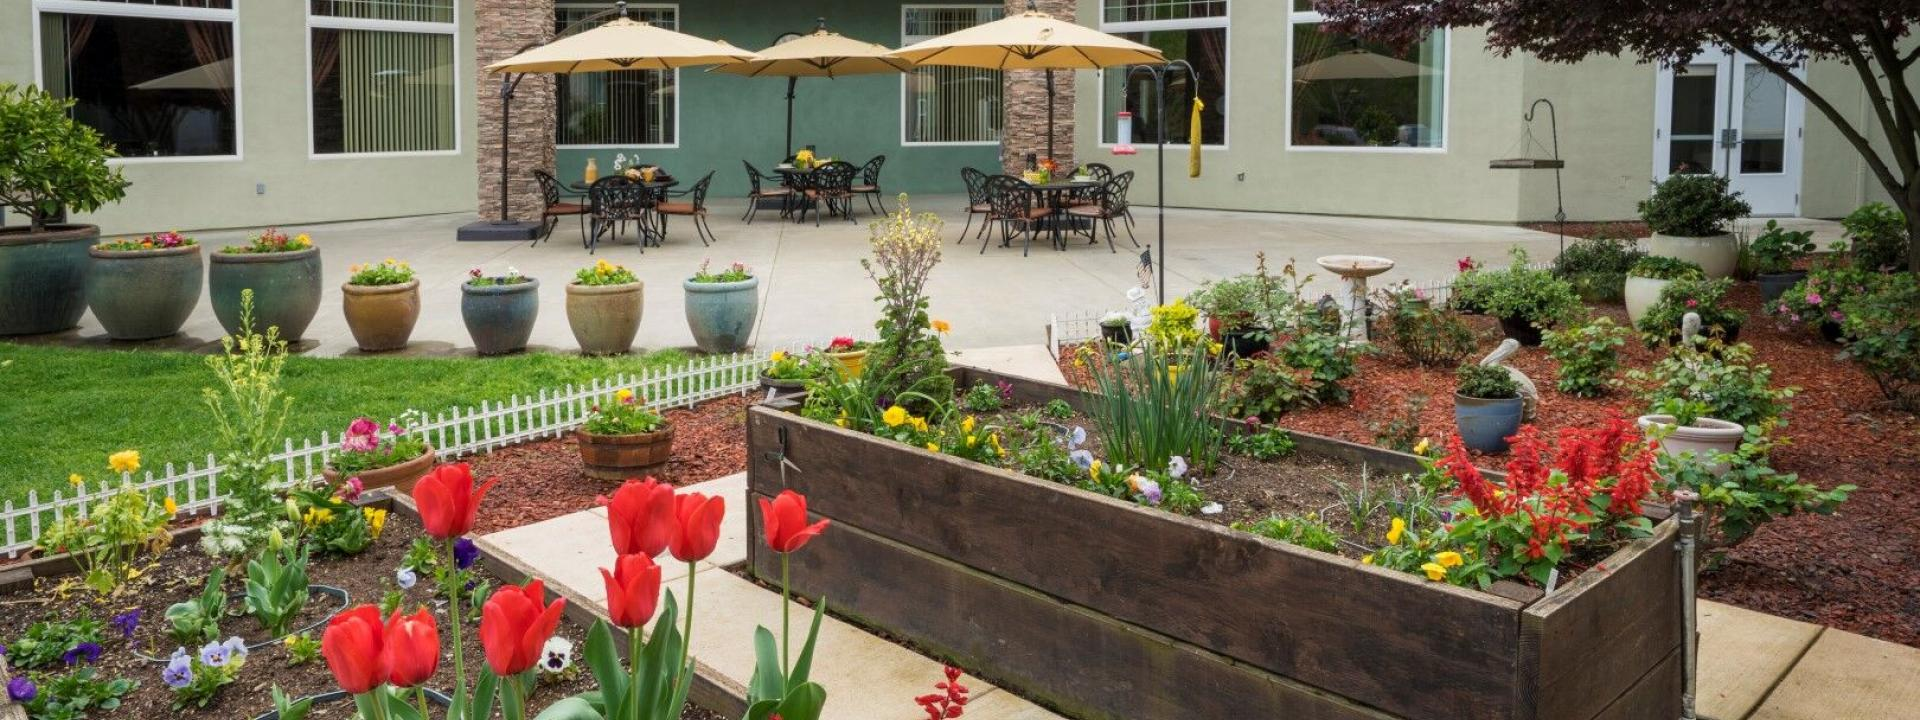 Outdoor patio with round table, chair, umbrellas, flower garden and potted plants